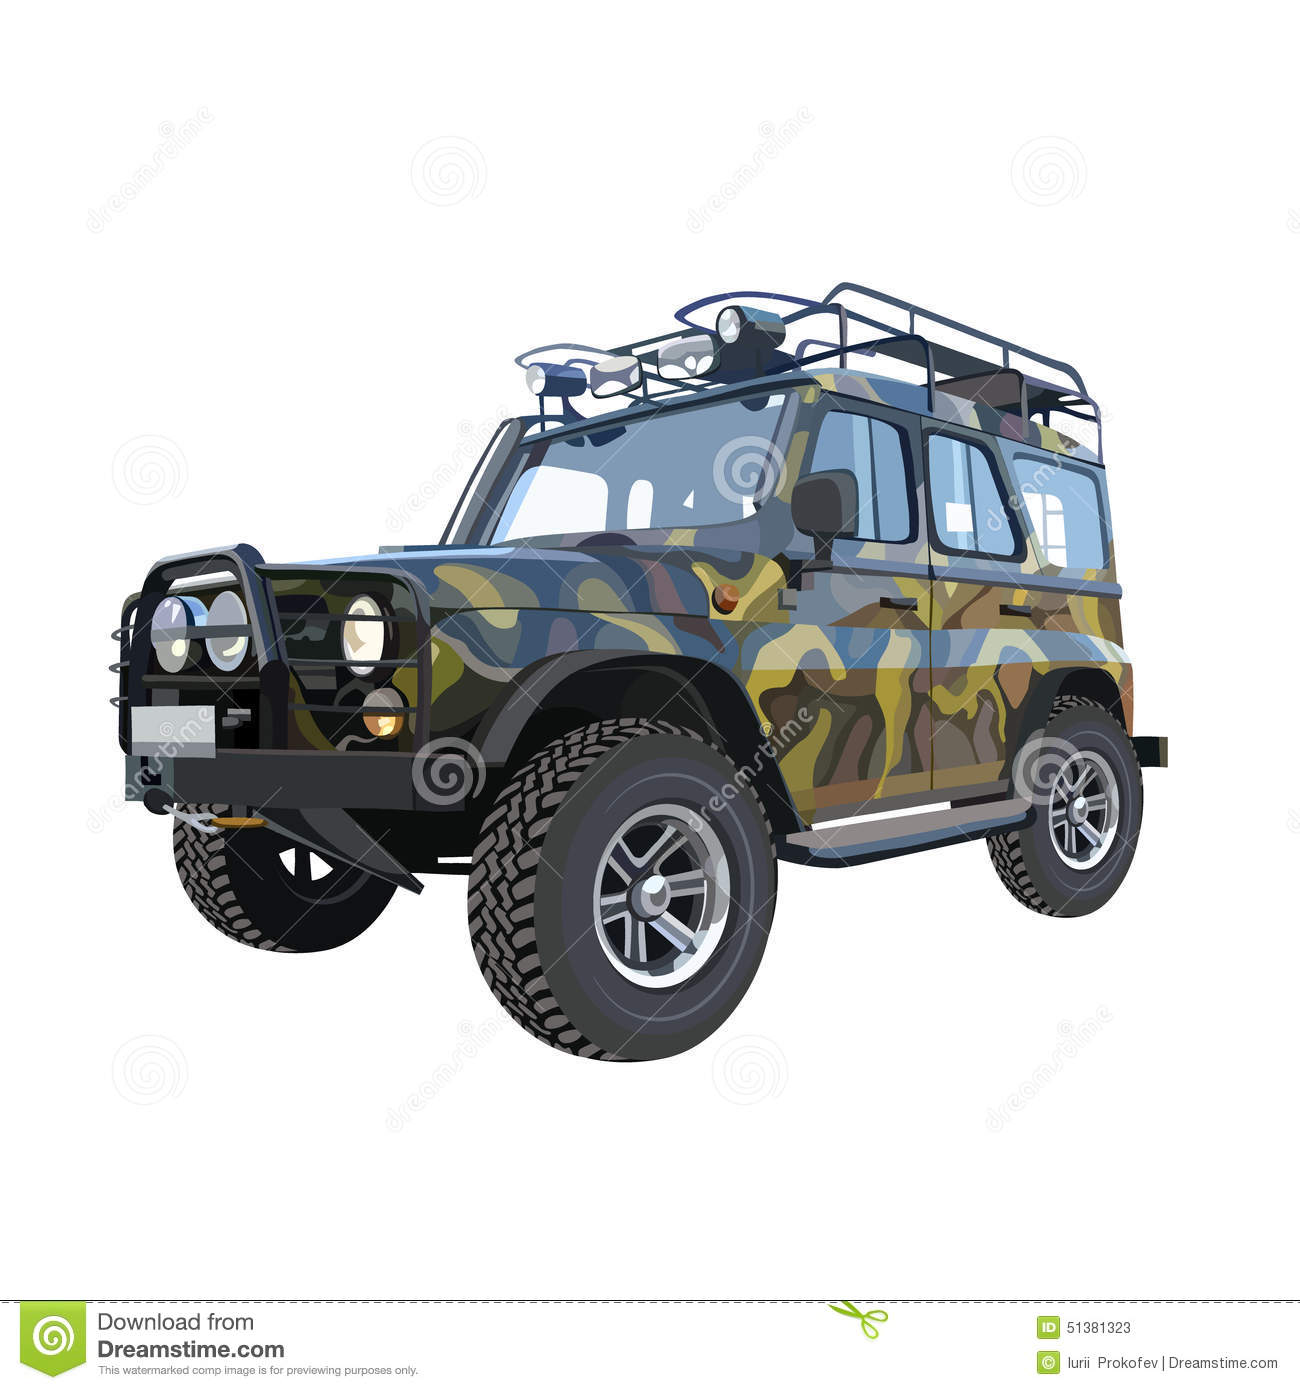 couleurs de camouflage de suv de voiture d 39 uaz illustration de vecteur illustration 51381323. Black Bedroom Furniture Sets. Home Design Ideas